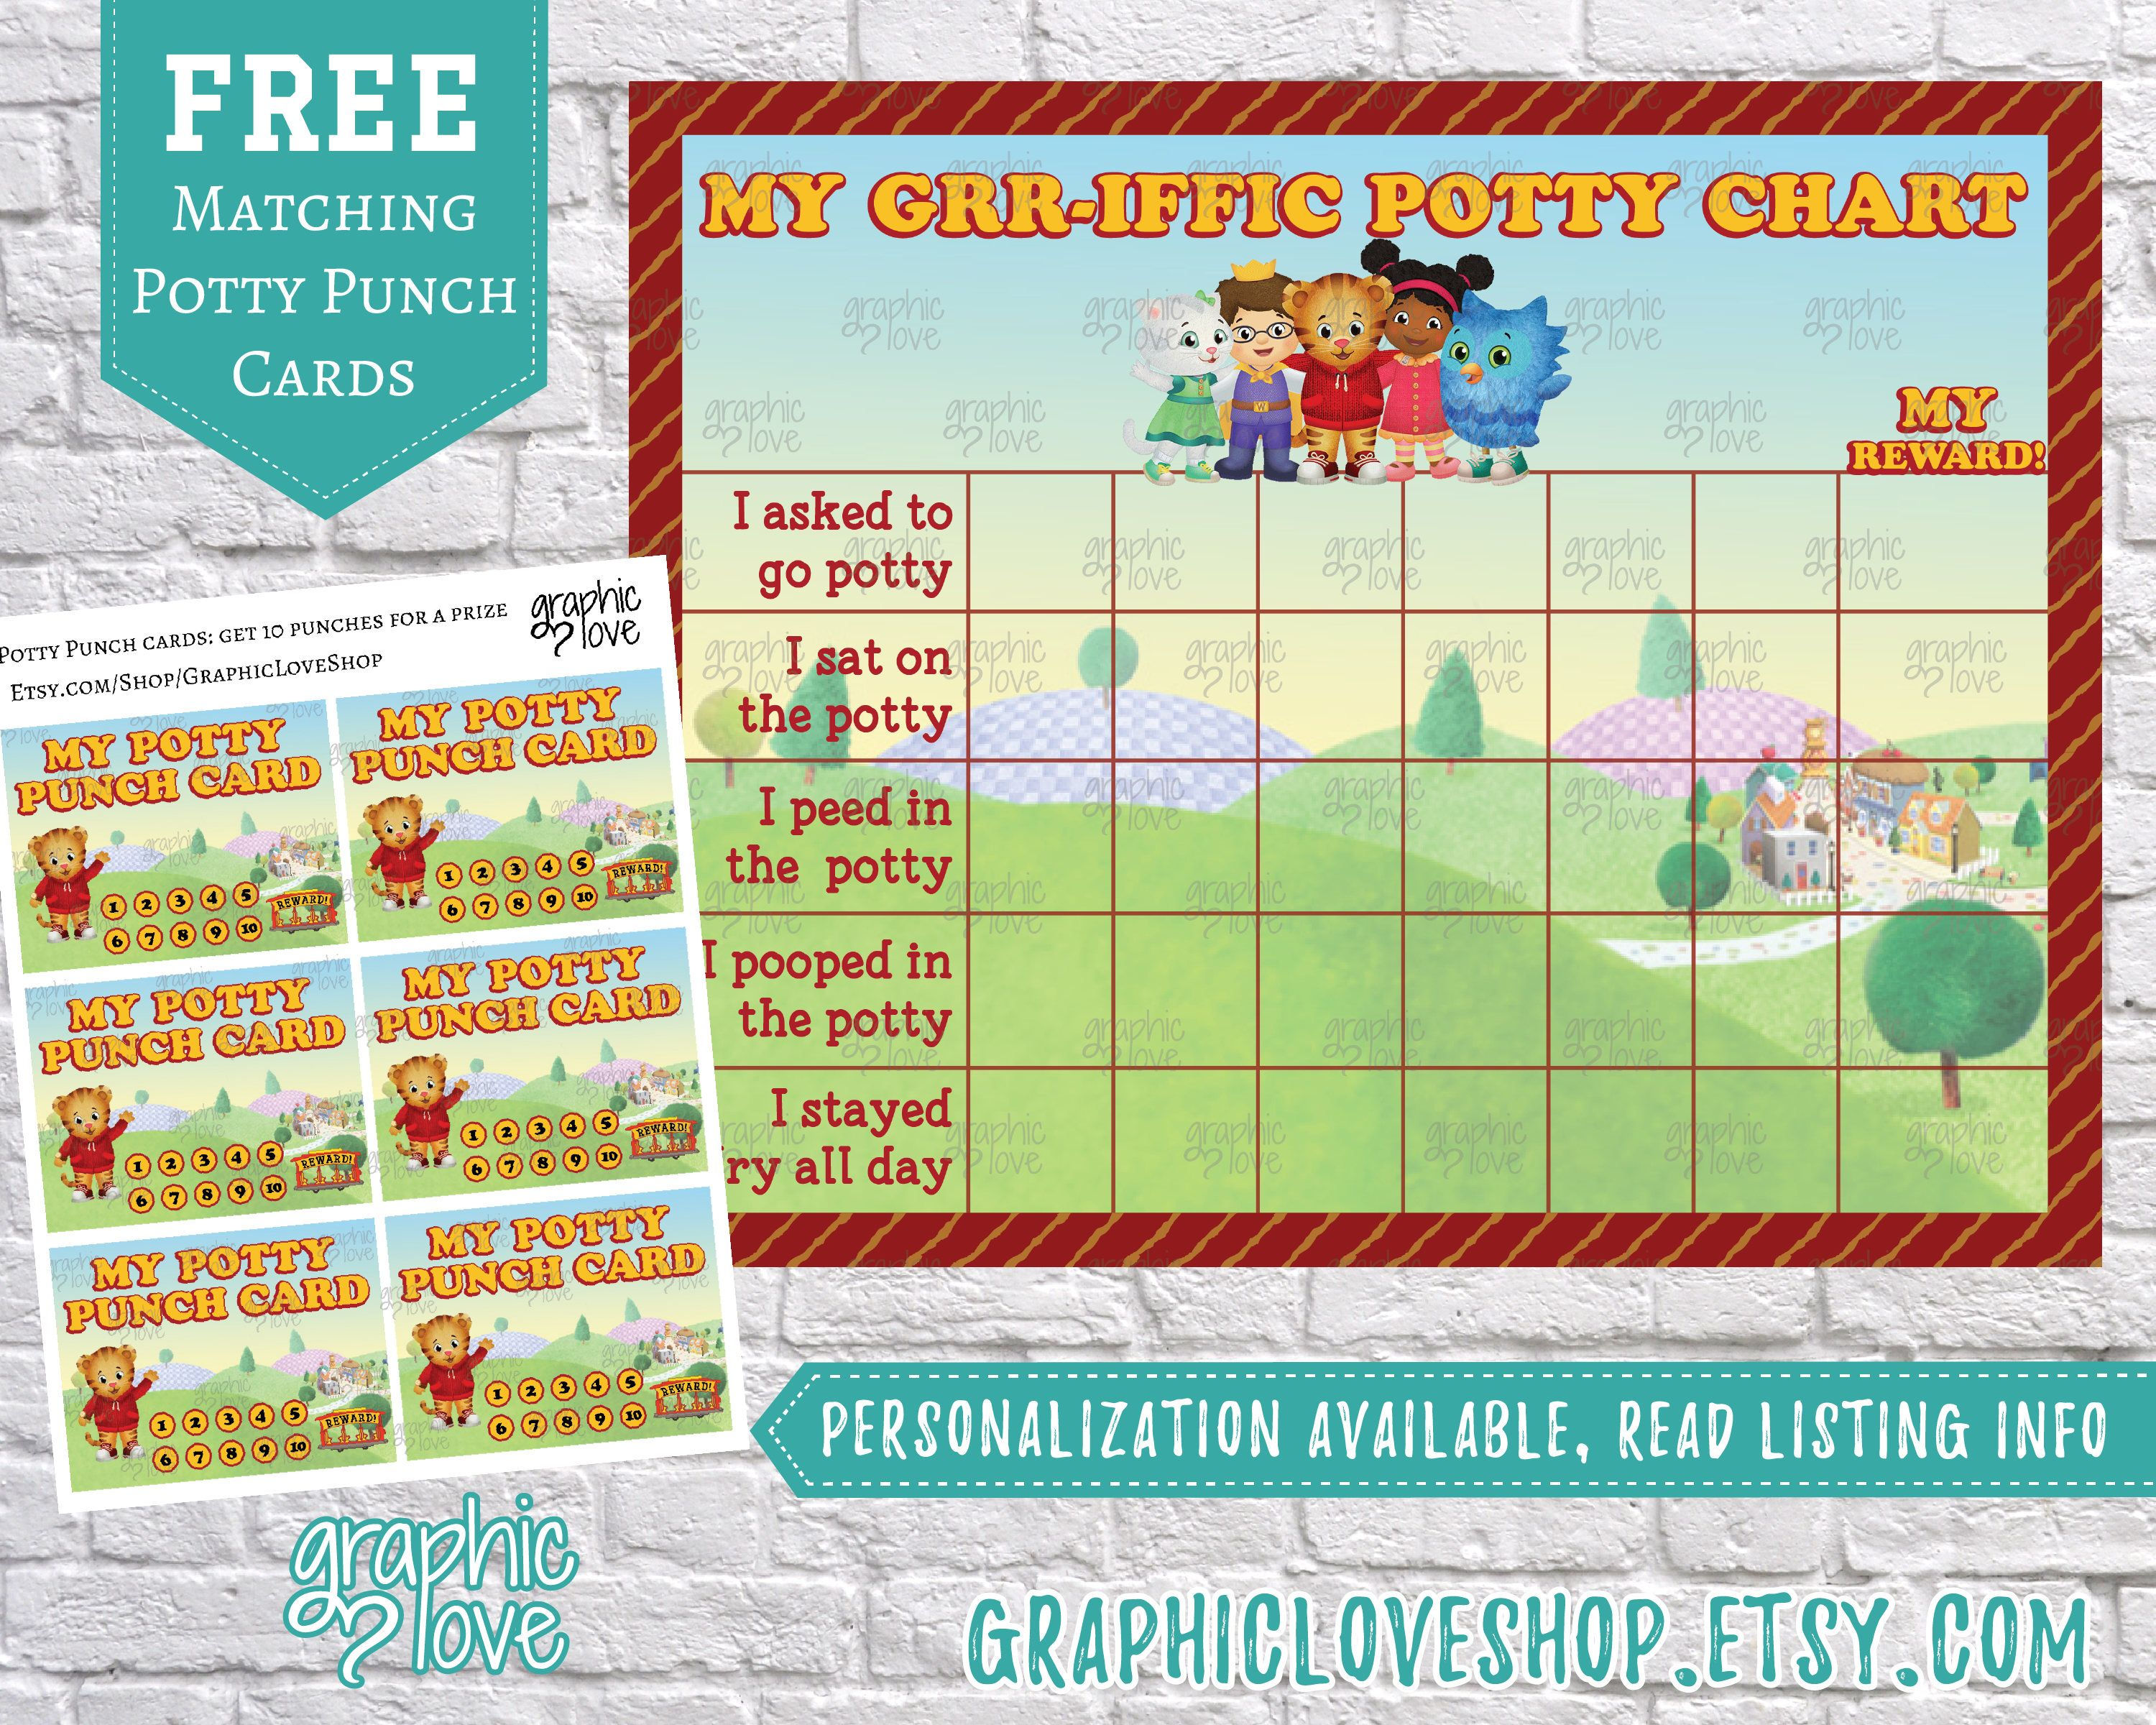 Printable Daniel Tiger Grr Iffic Potty Training Chart Free Punch Cards Mr Rogers Pbs Kids Neighborhoo Potty Training Chart Potty Chart Potty Training Tips